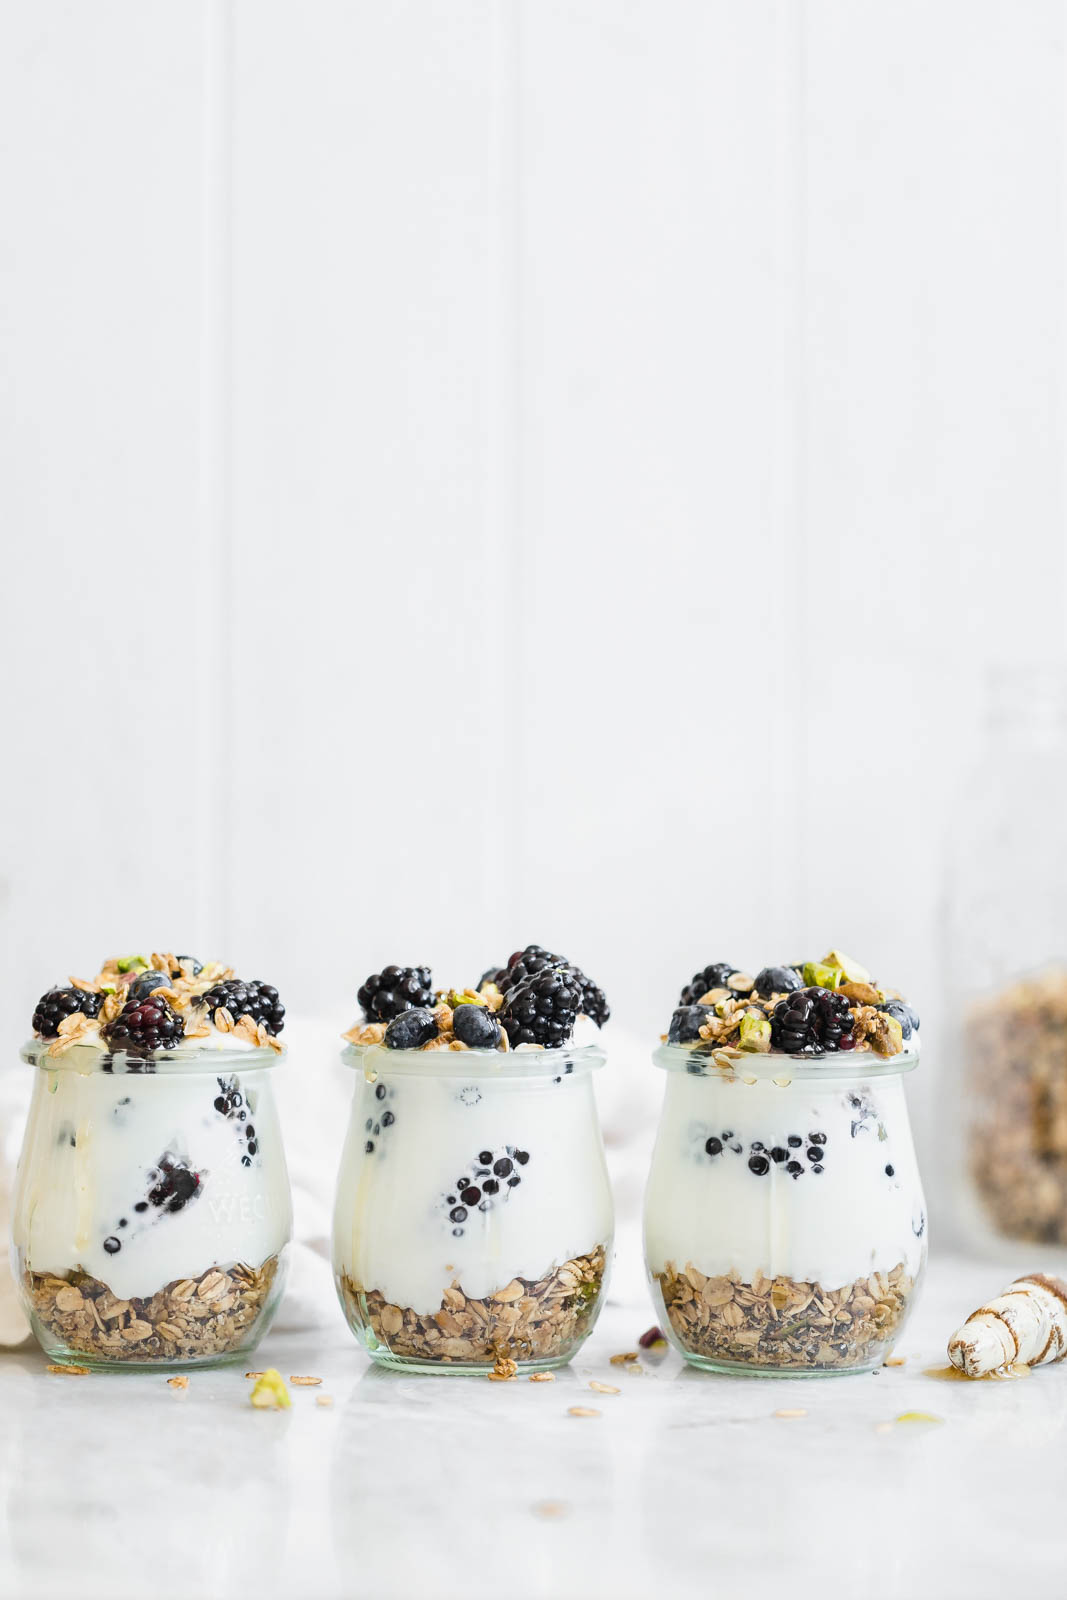 Cardamom Granola Parfaits topped with berries